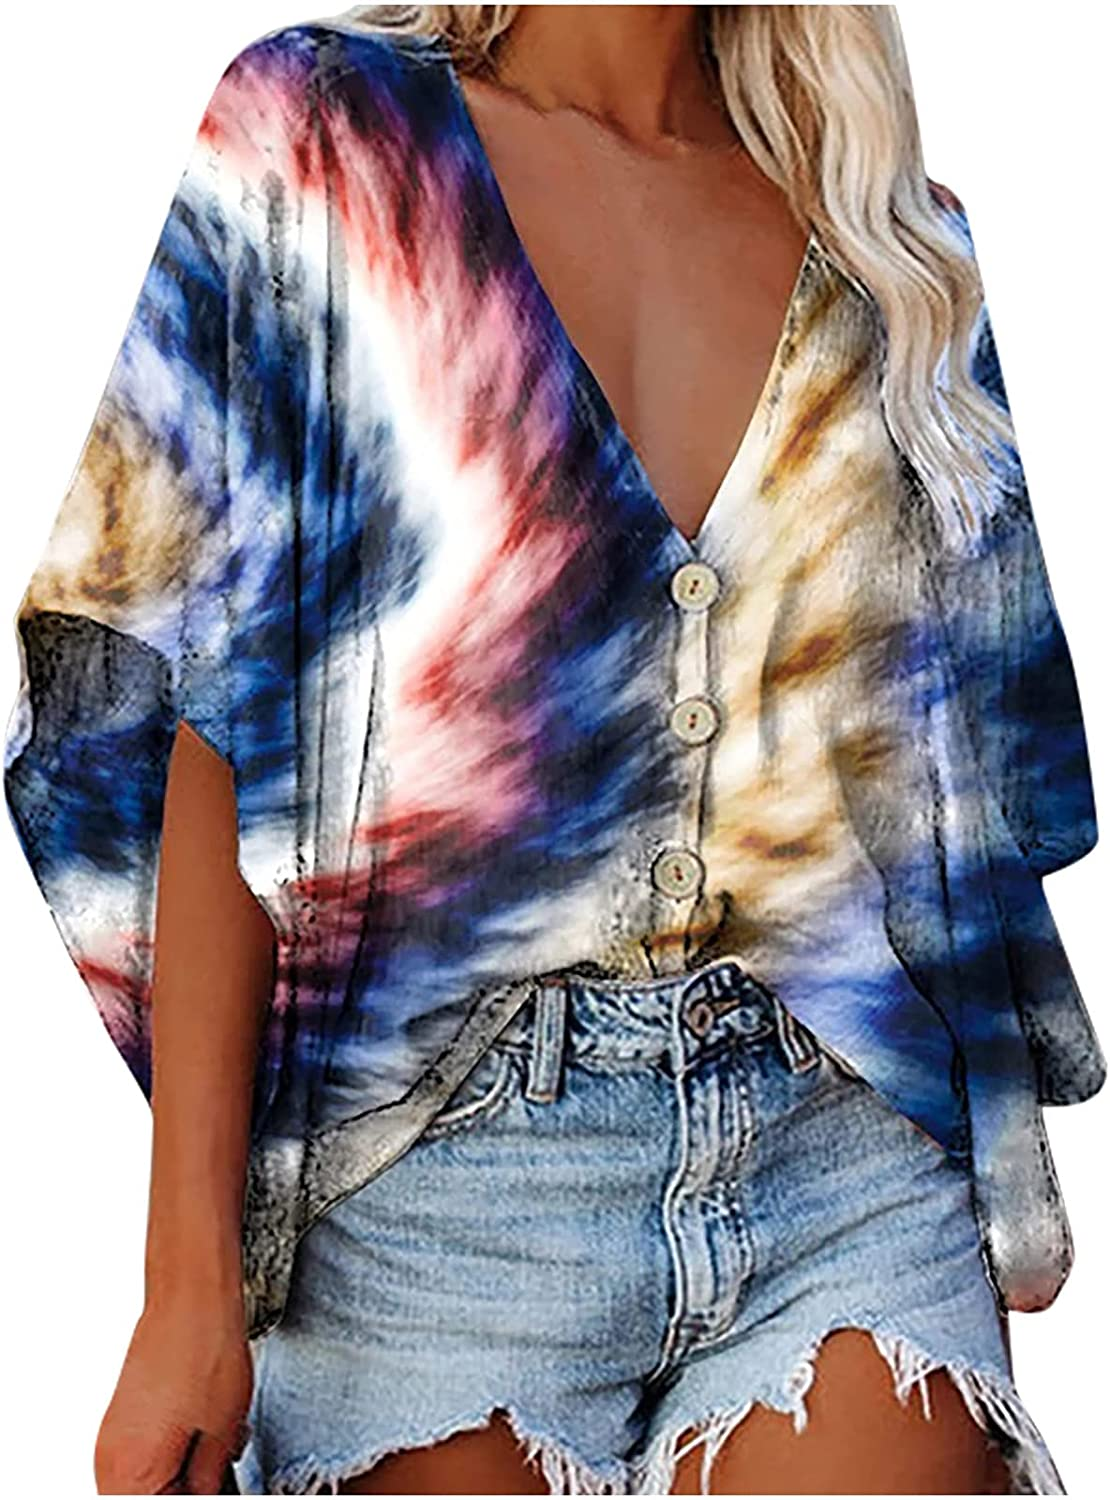 Women's Summer Button-Down Shirts Loose Fit Deep V Neck Tie dye Flare Sleeve Blouse Tops